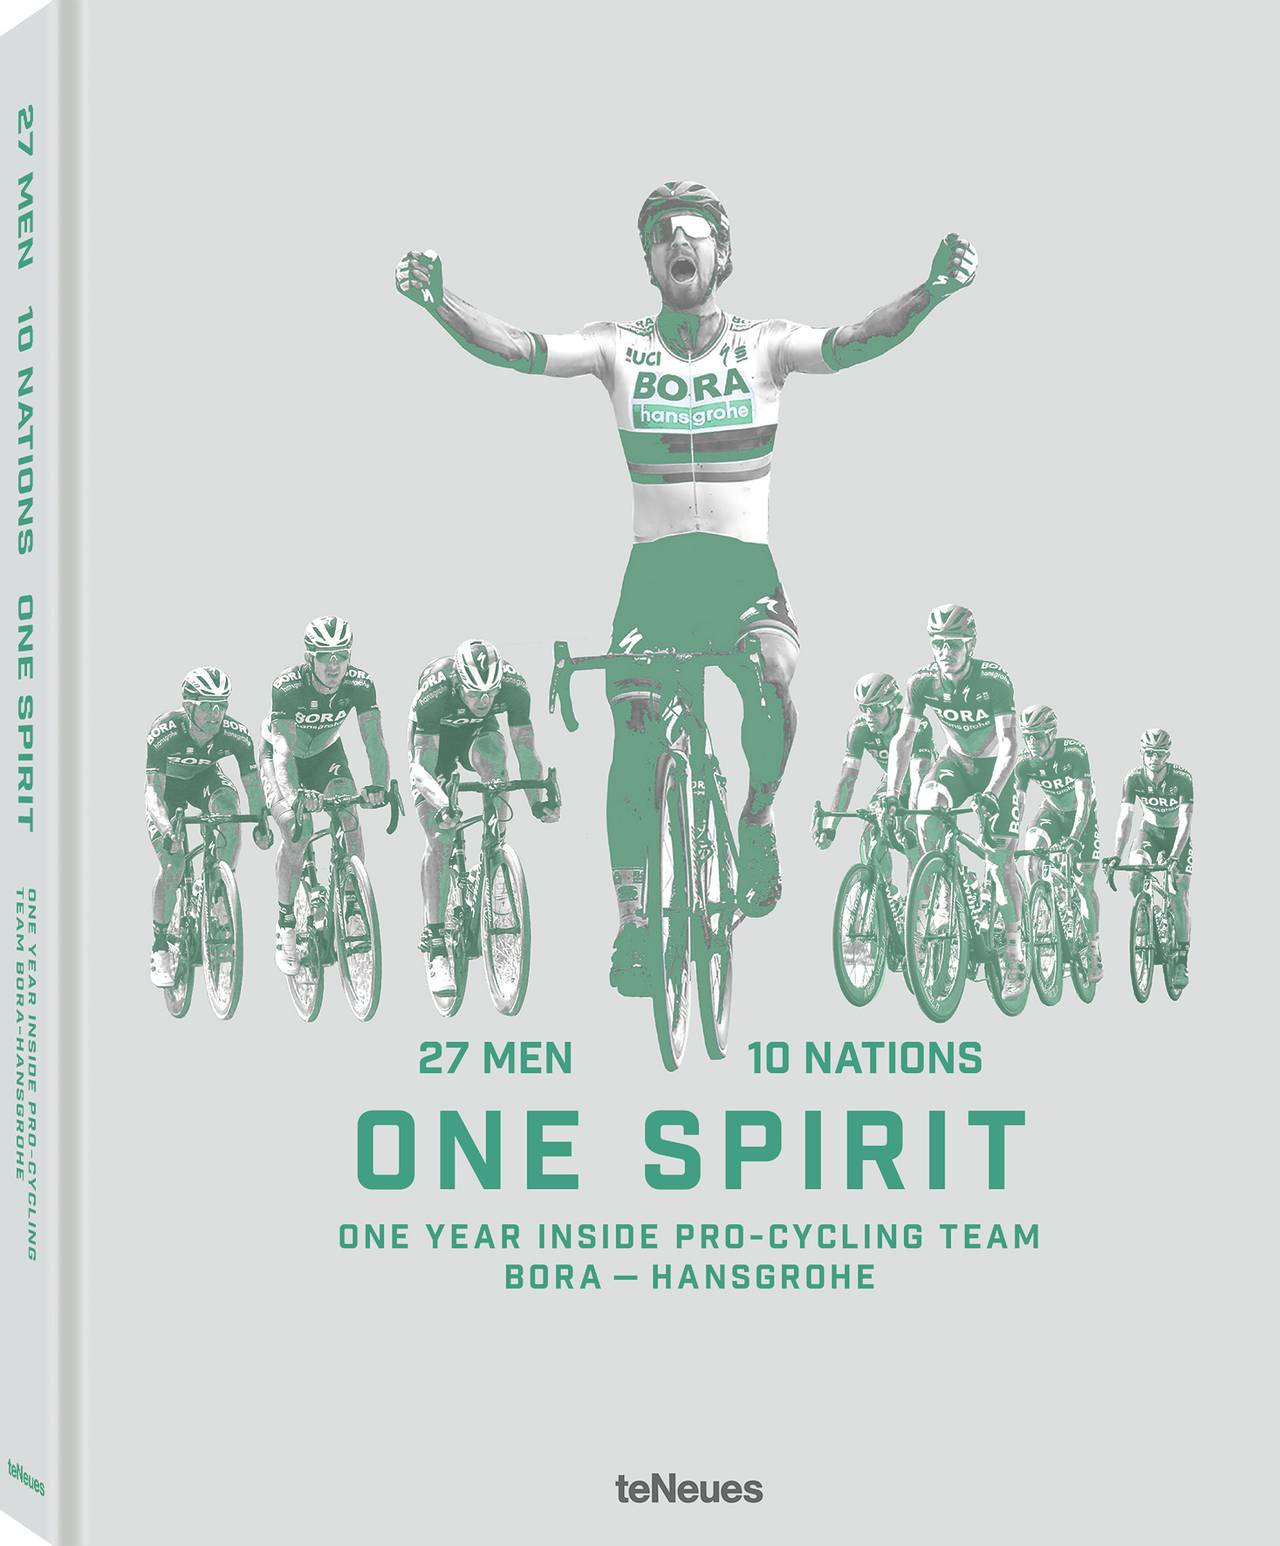 © 27 Men 10 Nations One Spirit - One Year Inside Pro-Cycling Team BORA - hansgrohe, published by teNeues, www.teneues.com